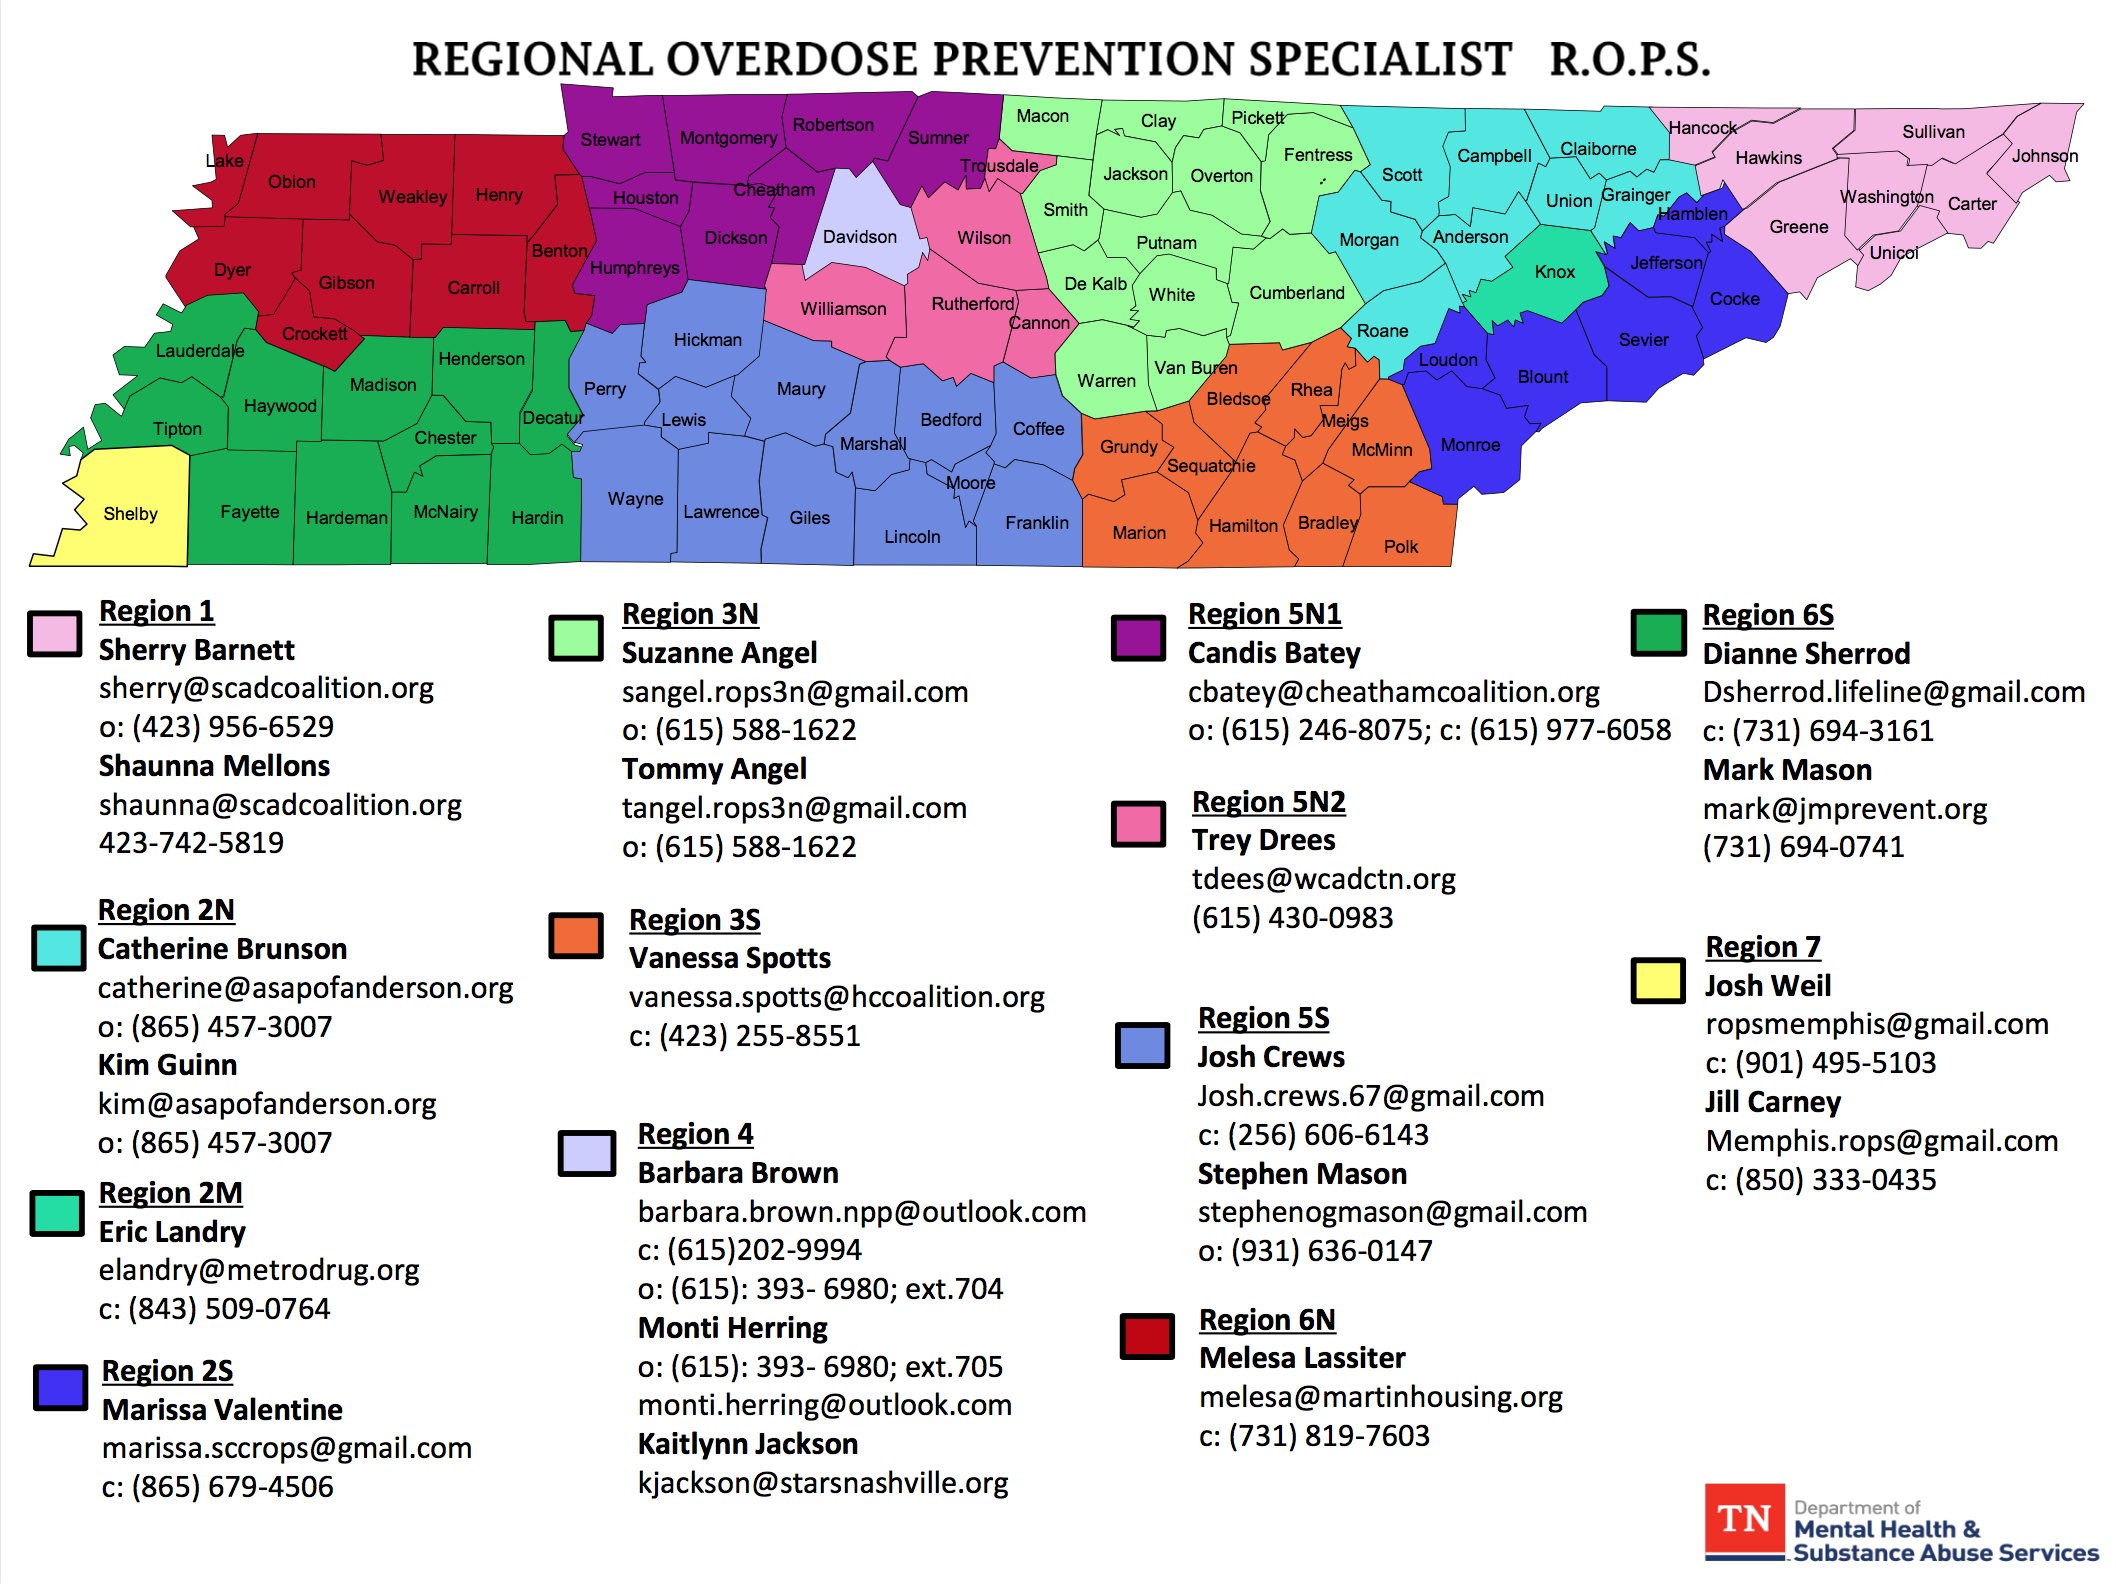 Contact the regional representative in your county. Please reach out to us if you have any issues connecting.